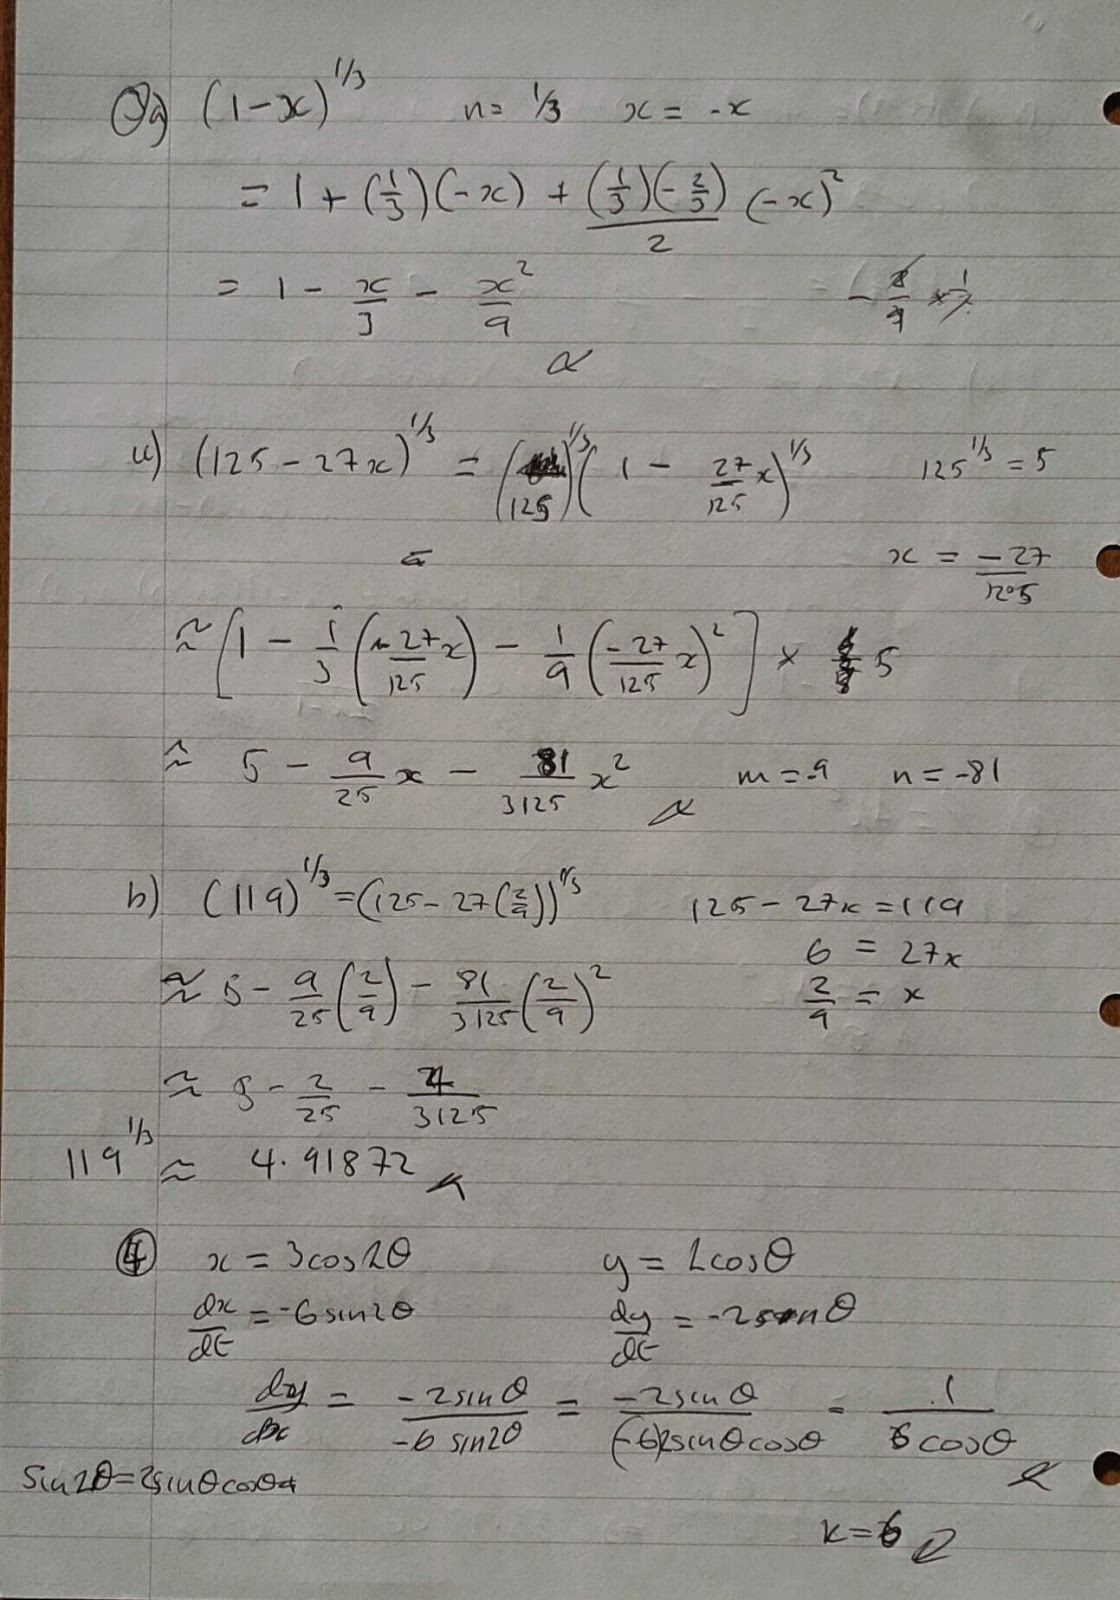 A Level Maths Notes: AQA Core 4 Summer 2011 Exam Paper